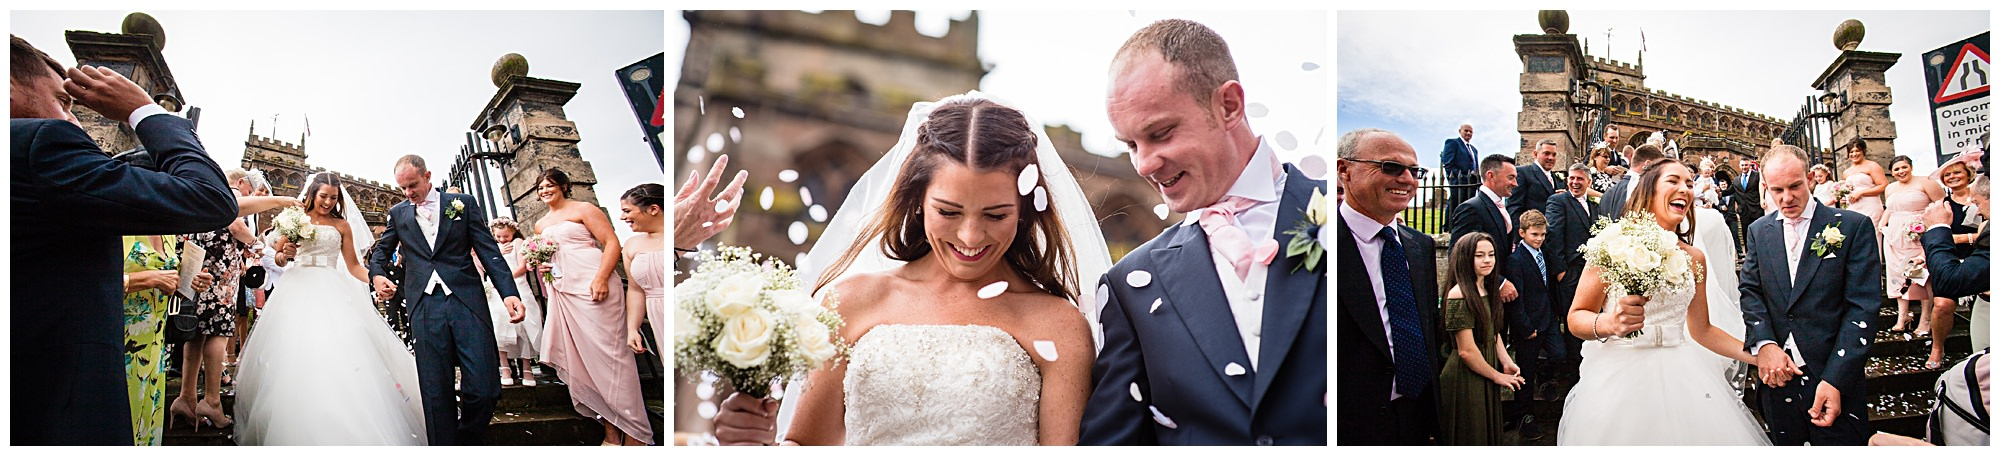 confetti and happy bride and groom St James' Church Audlem Wedding Photography